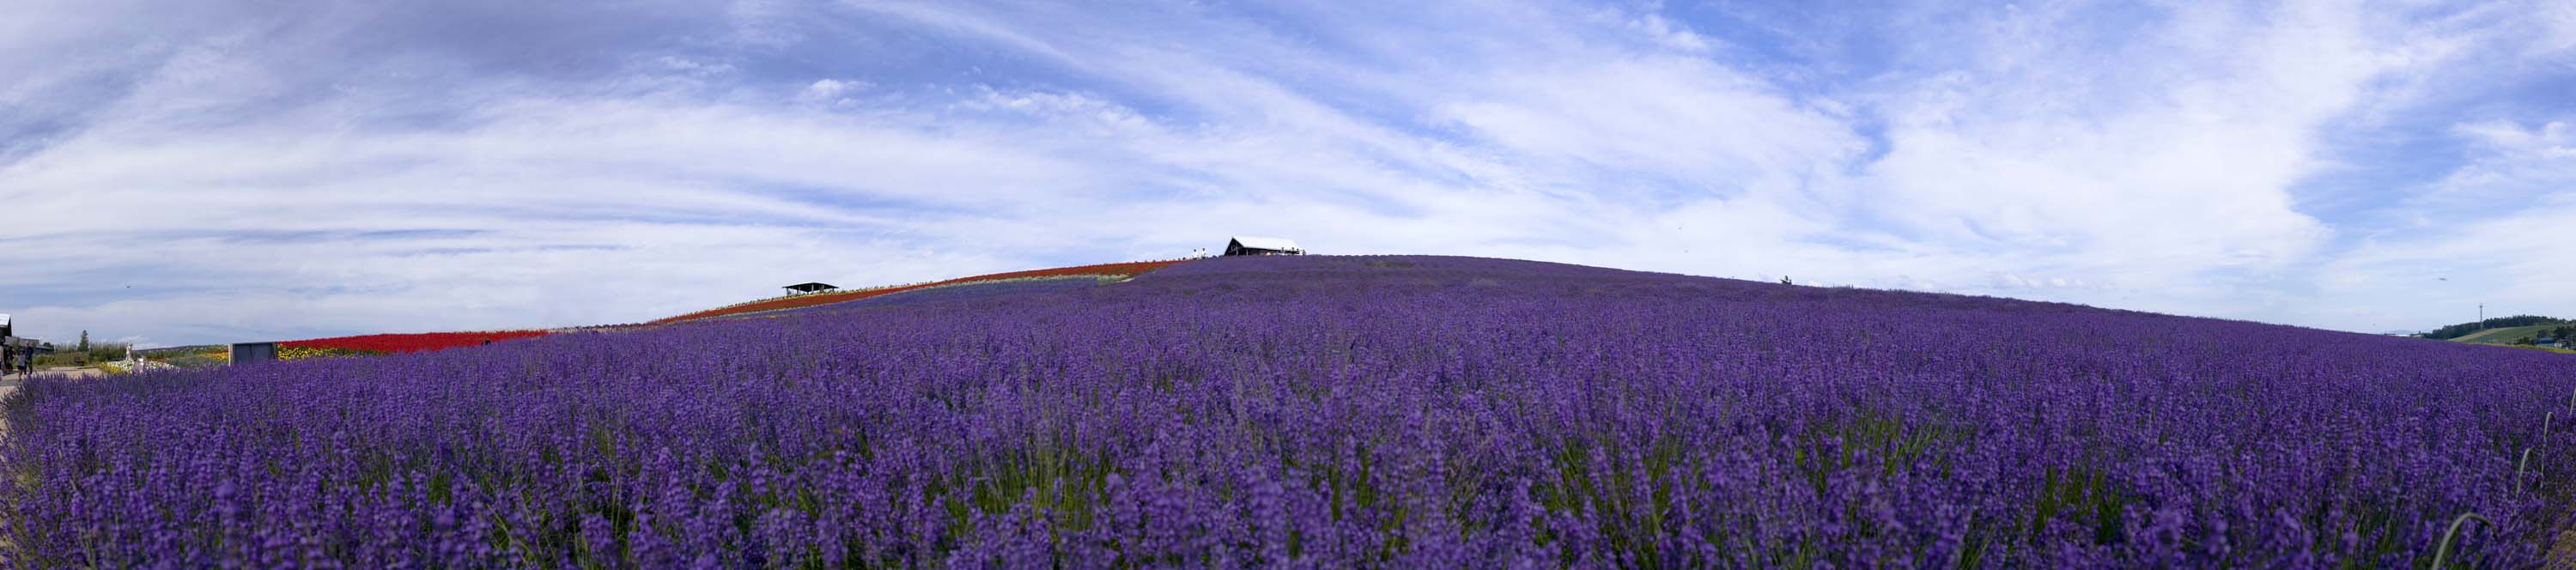 photo,material,free,landscape,picture,stock photo,Creative Commons,Lavender field whole view, lavender, flower garden, Bluish violet, Herb